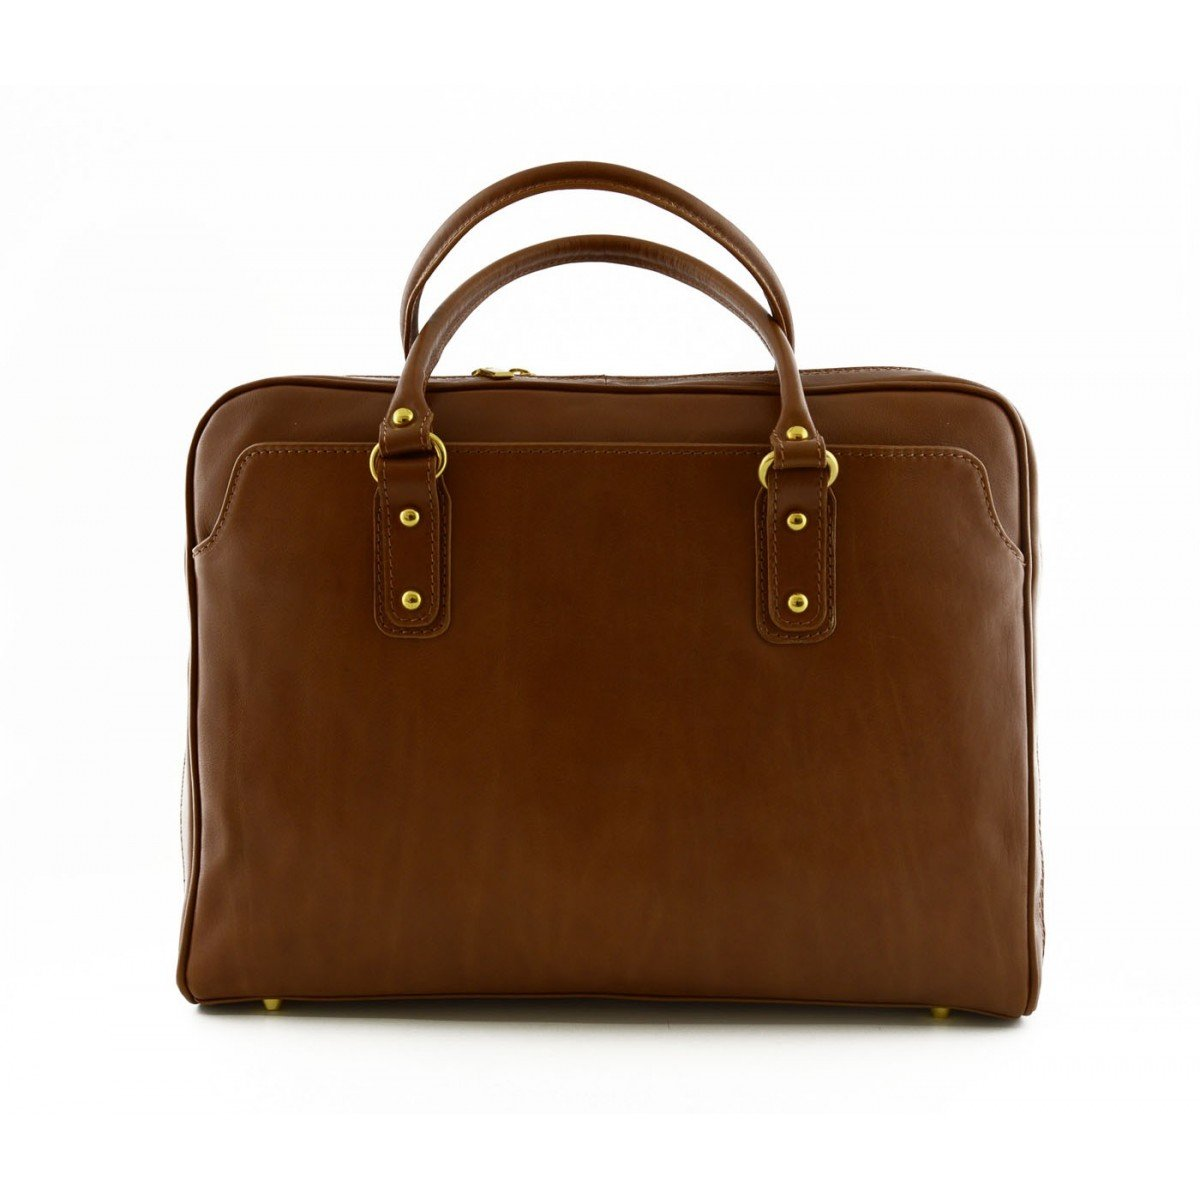 Made In Italy Laptop Leather Bag Color Cognac - Business Bag   B015II6HUU